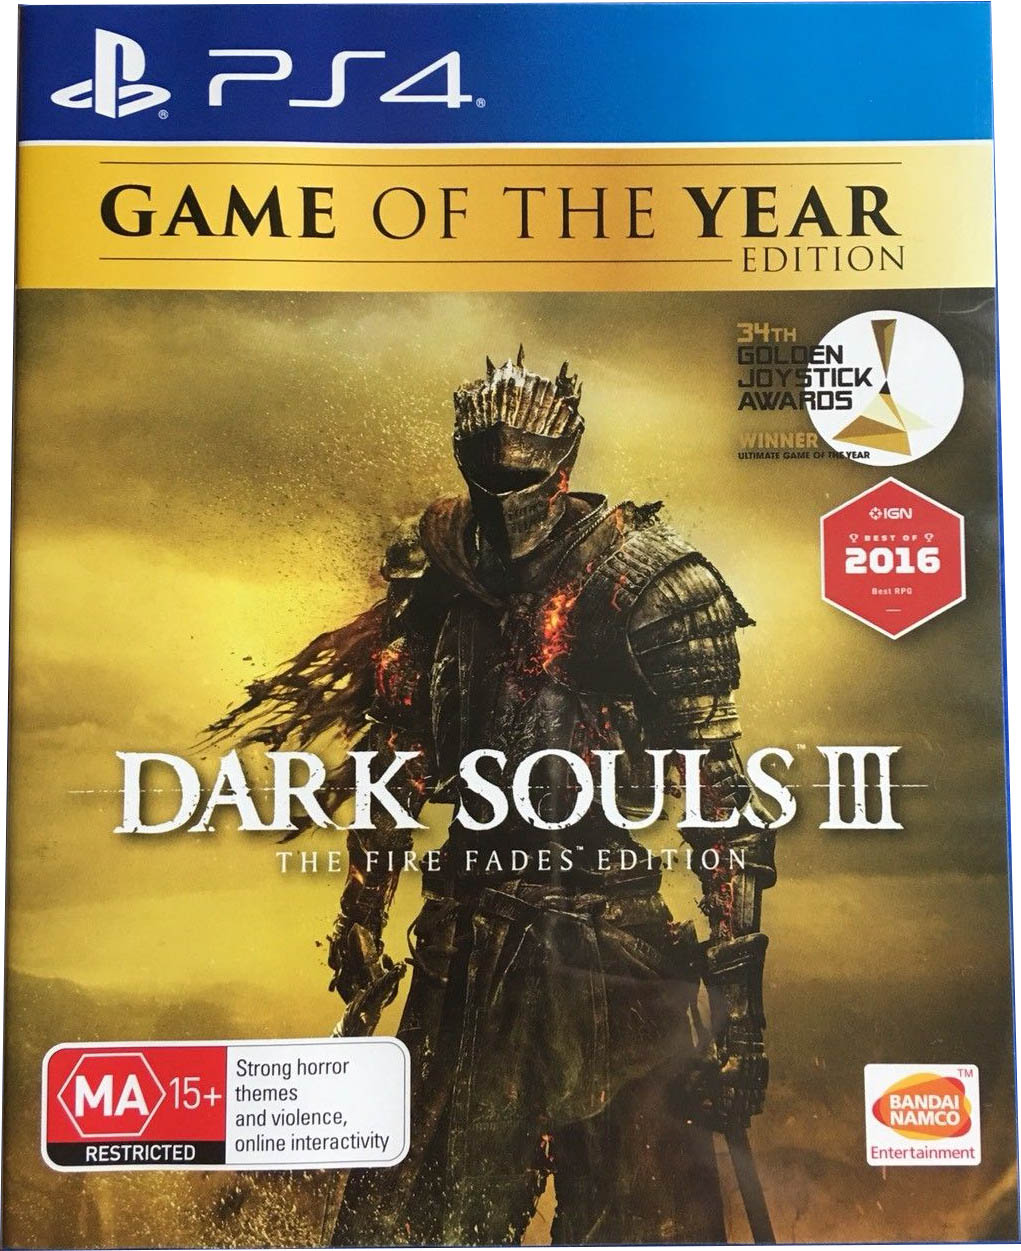 Dark Souls III: The Fire Fades Edition (Game of the Year Edition) Издание в Австралии